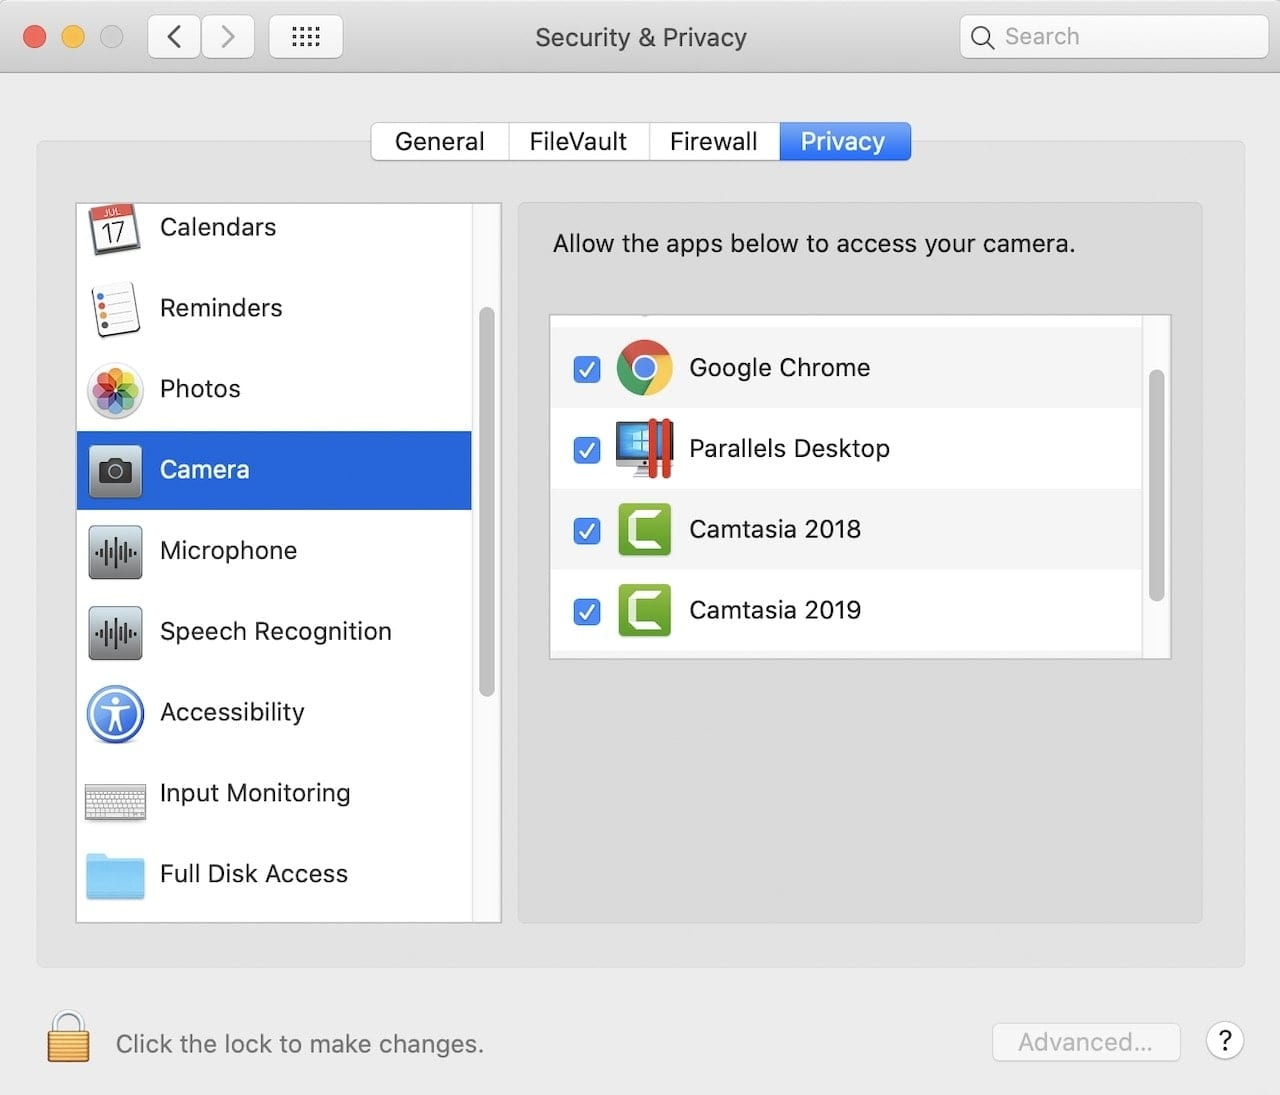 Permissions granted to apps can be revoked or changes in the Security & Privacy pane of System Preferences